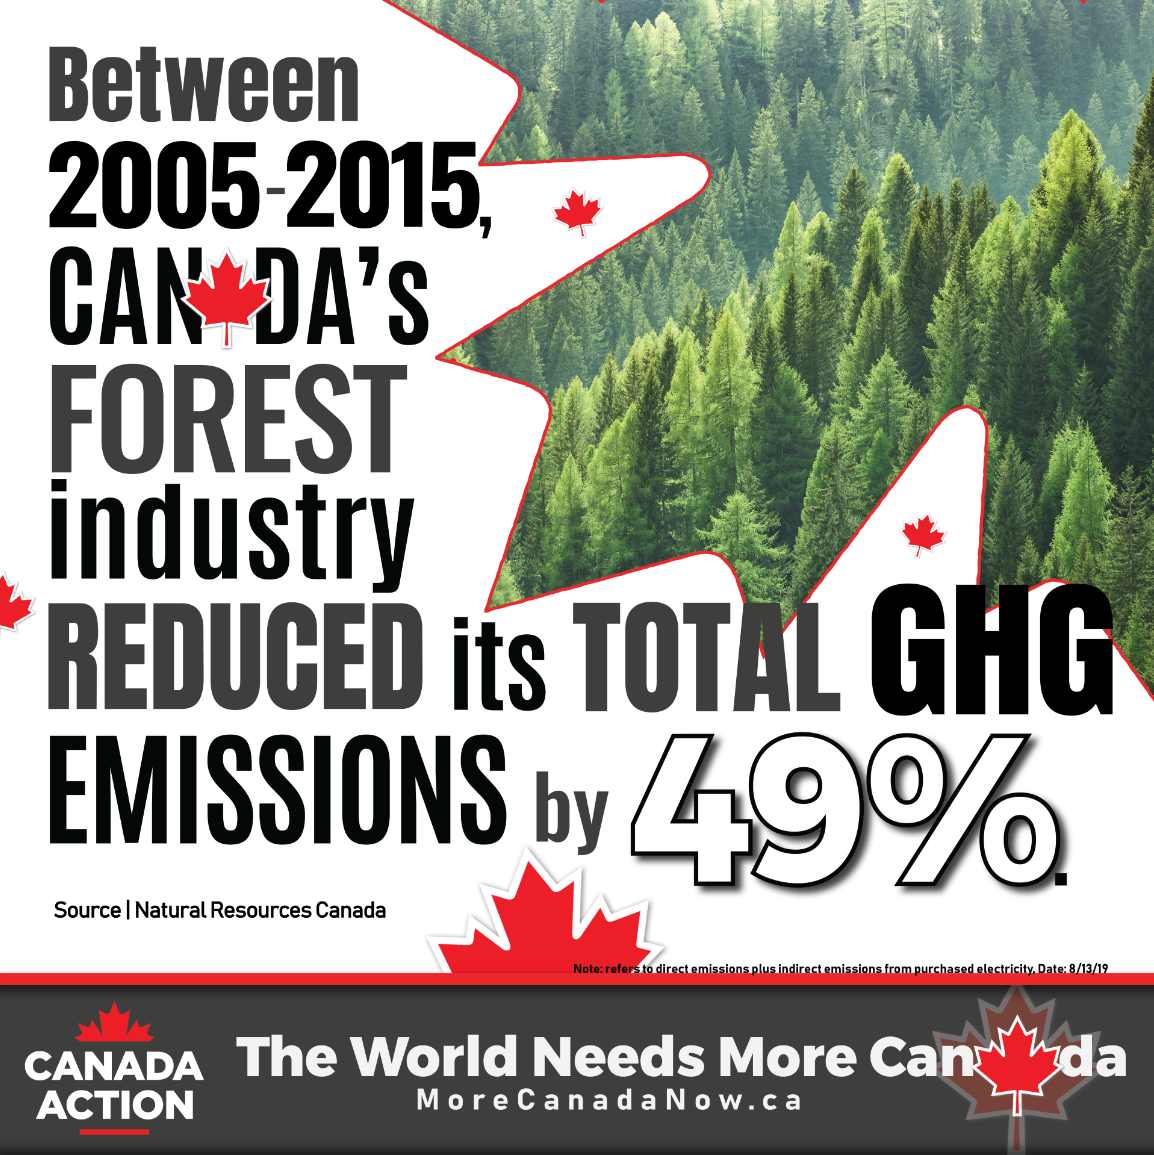 Canadian forest industry greenhouse gas emission reductions 2005-2015